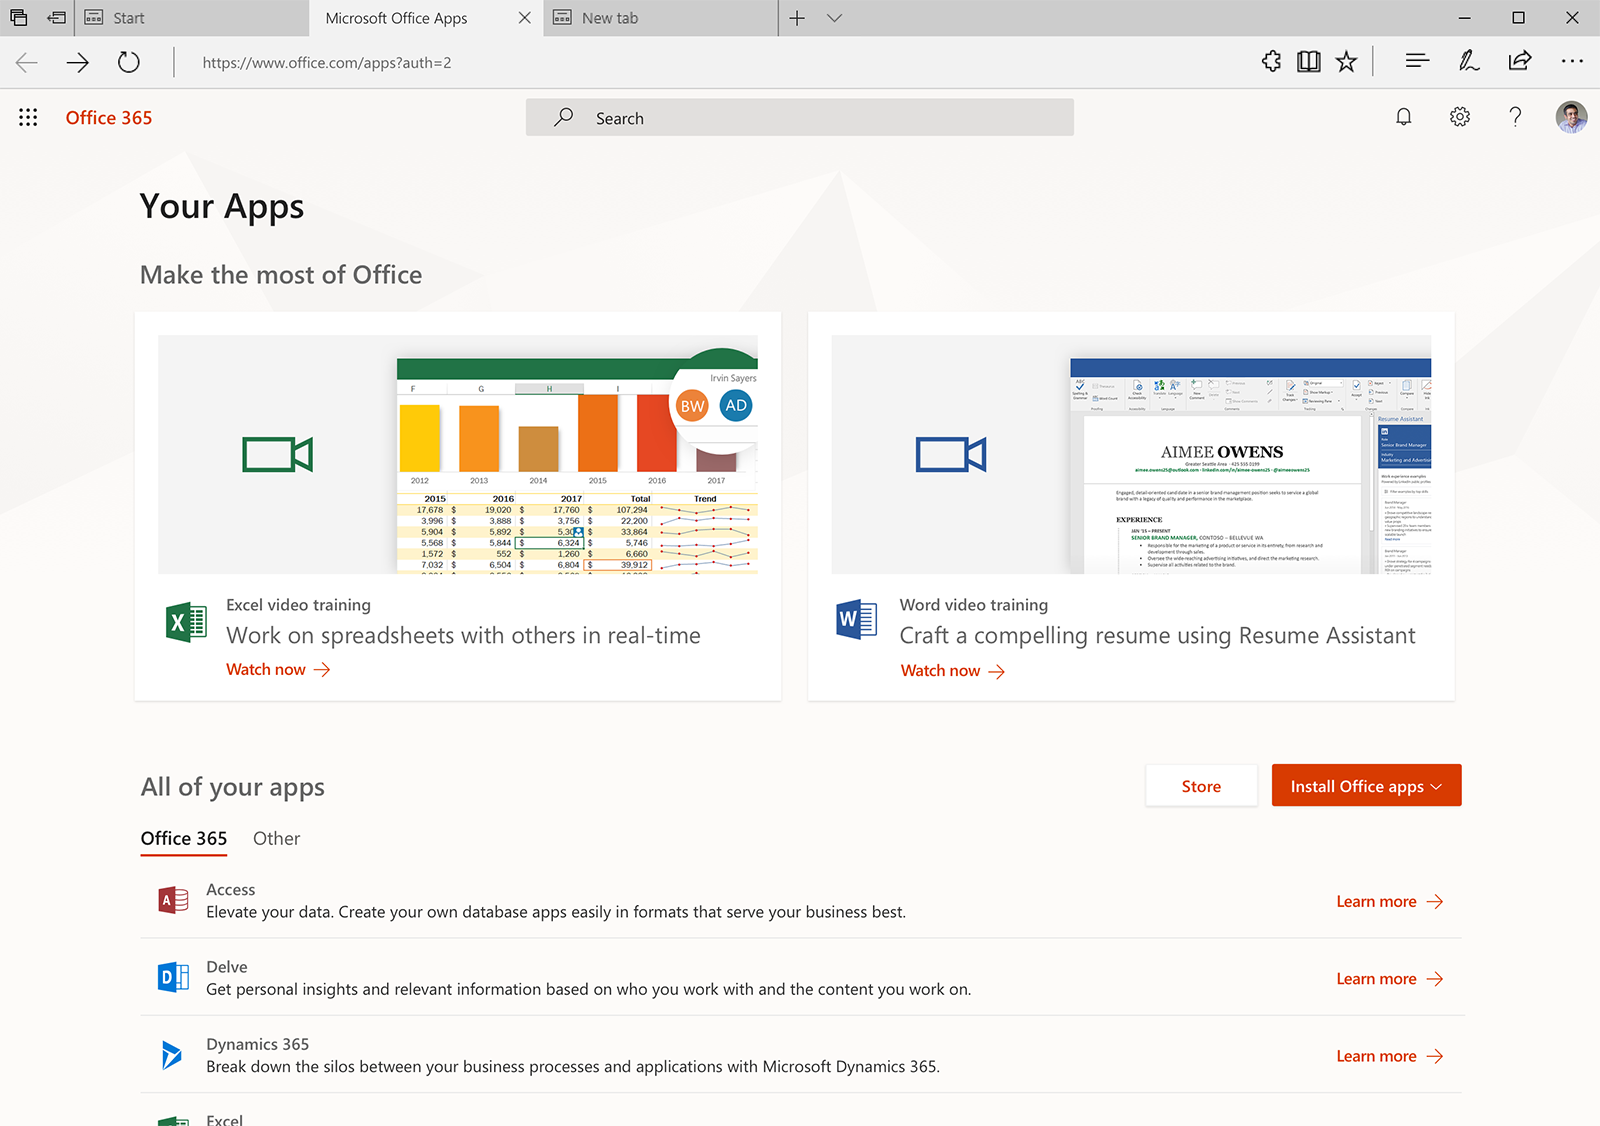 Image of the new Office 365 gallery, where you can explore apps.